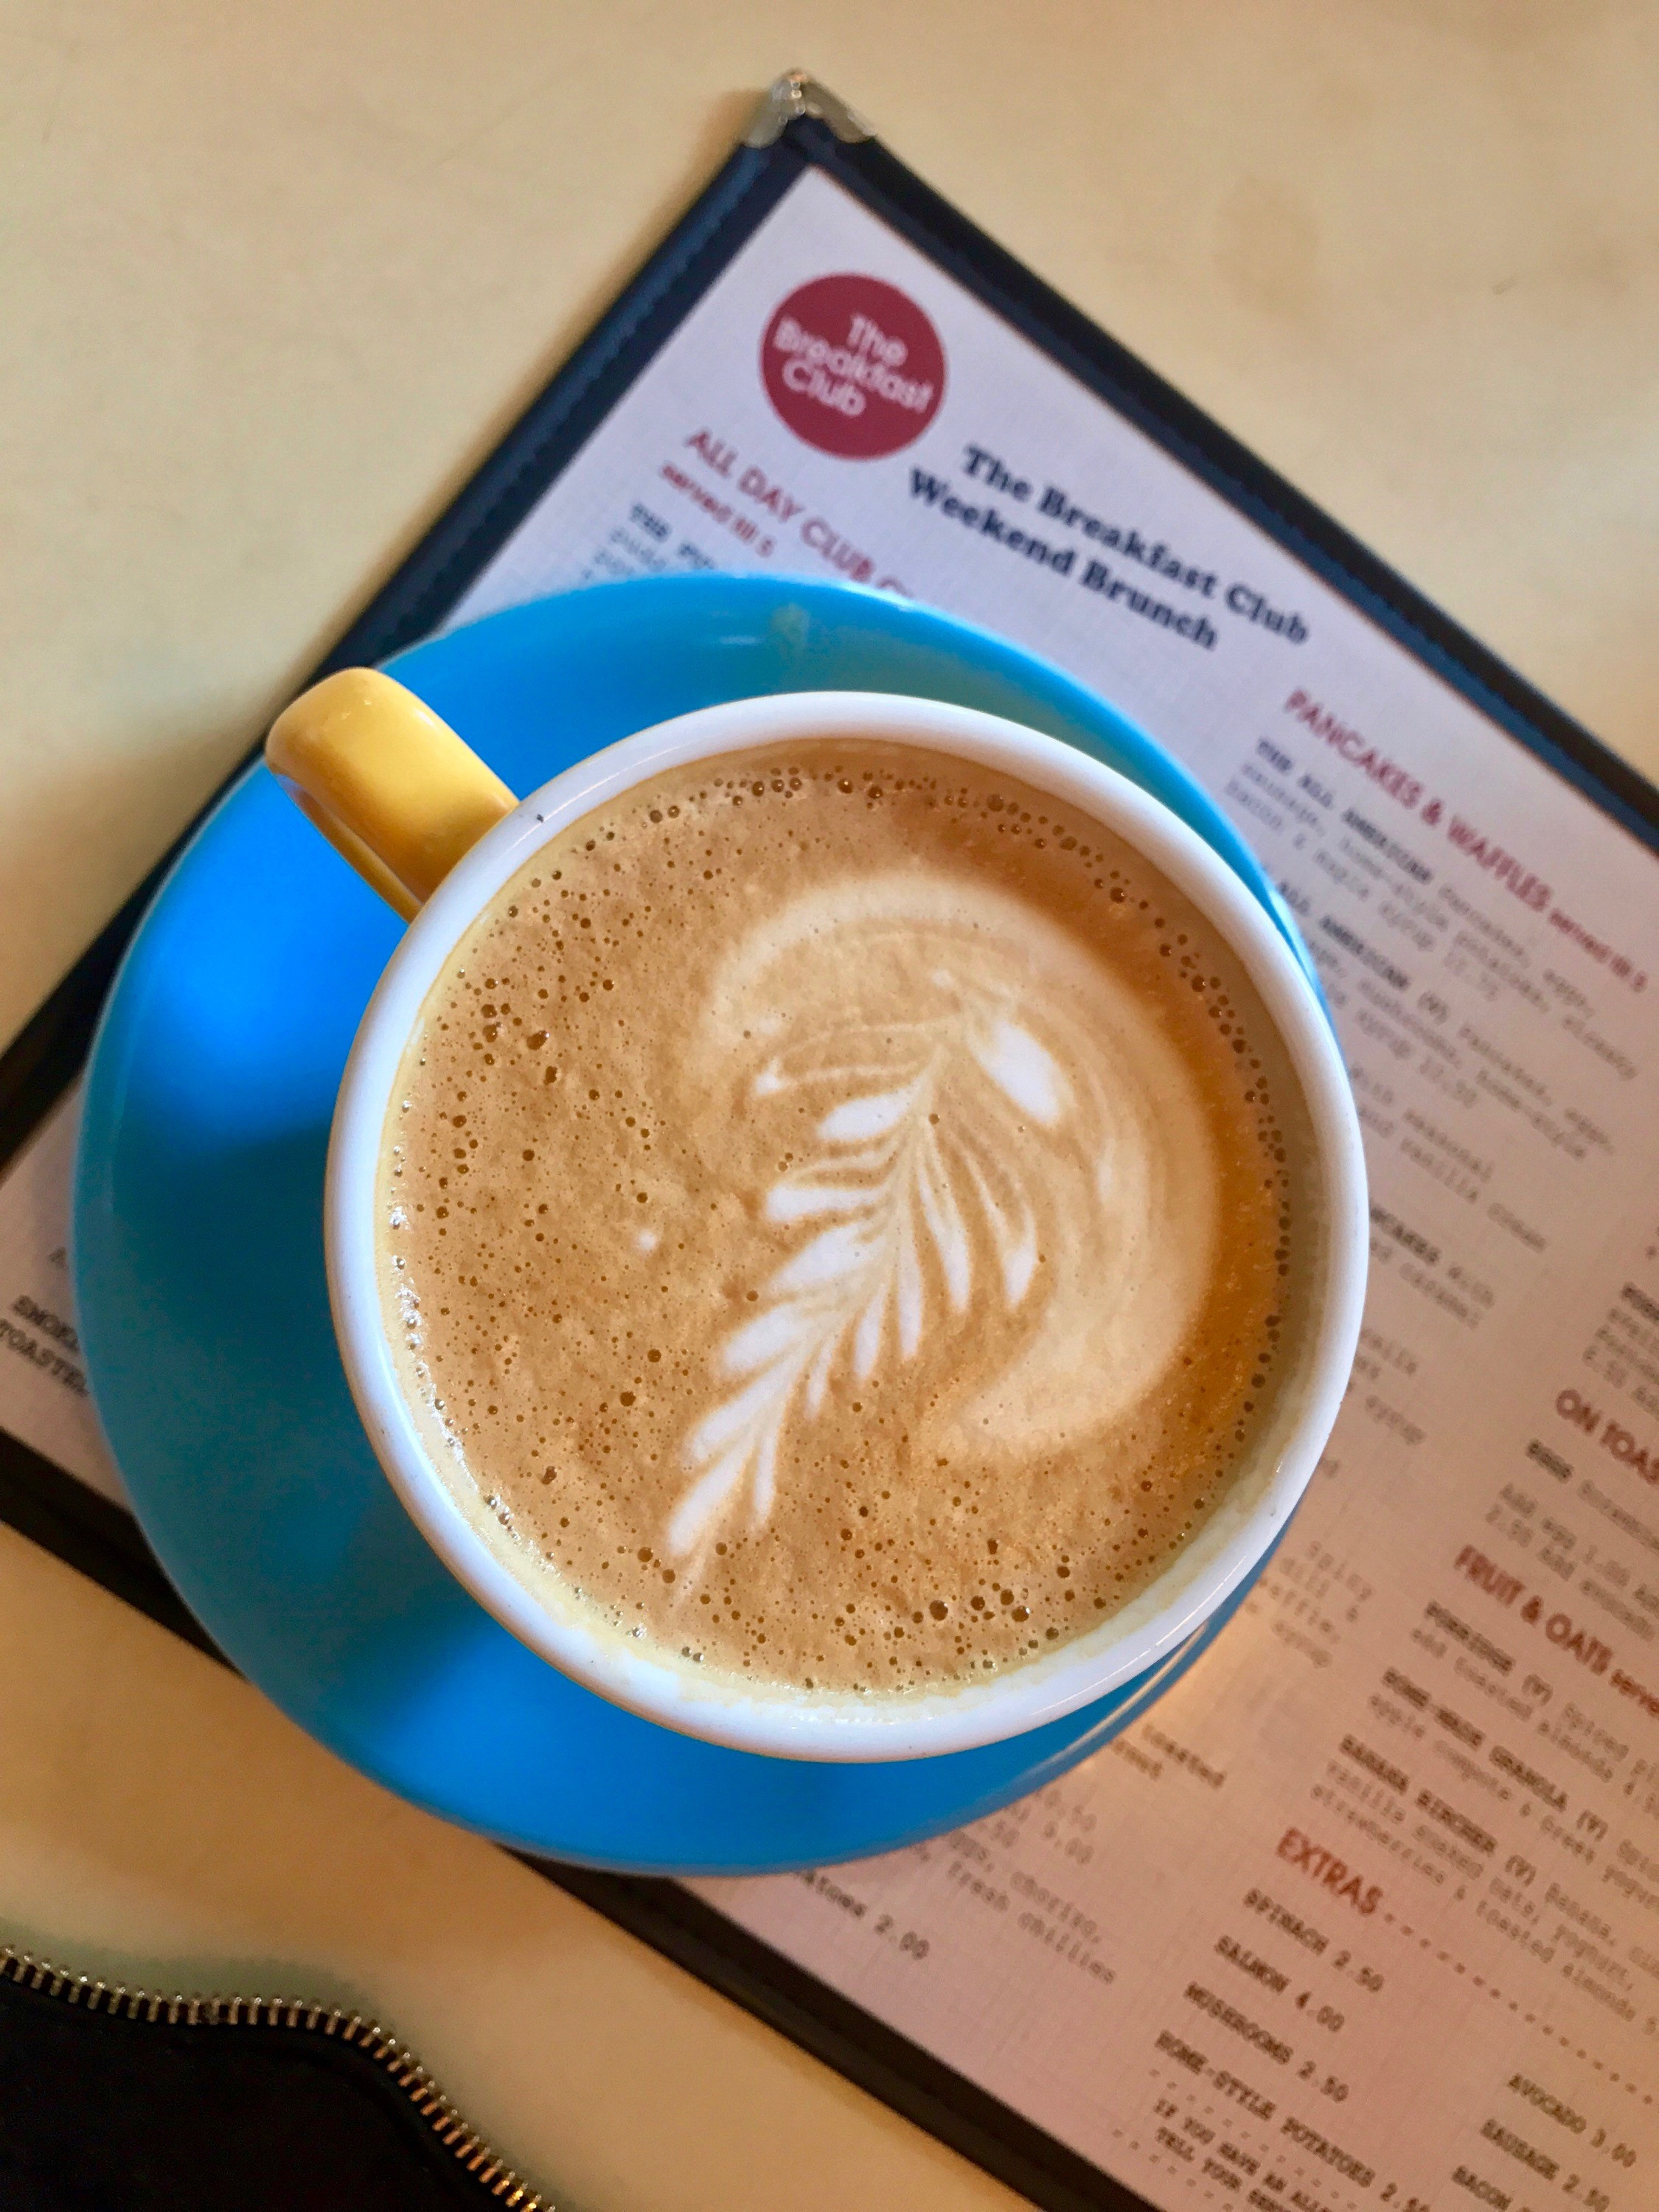 CAPAStudyAbroad_London_Summer2017_From Maita Ankrum Coffee 10.jpg